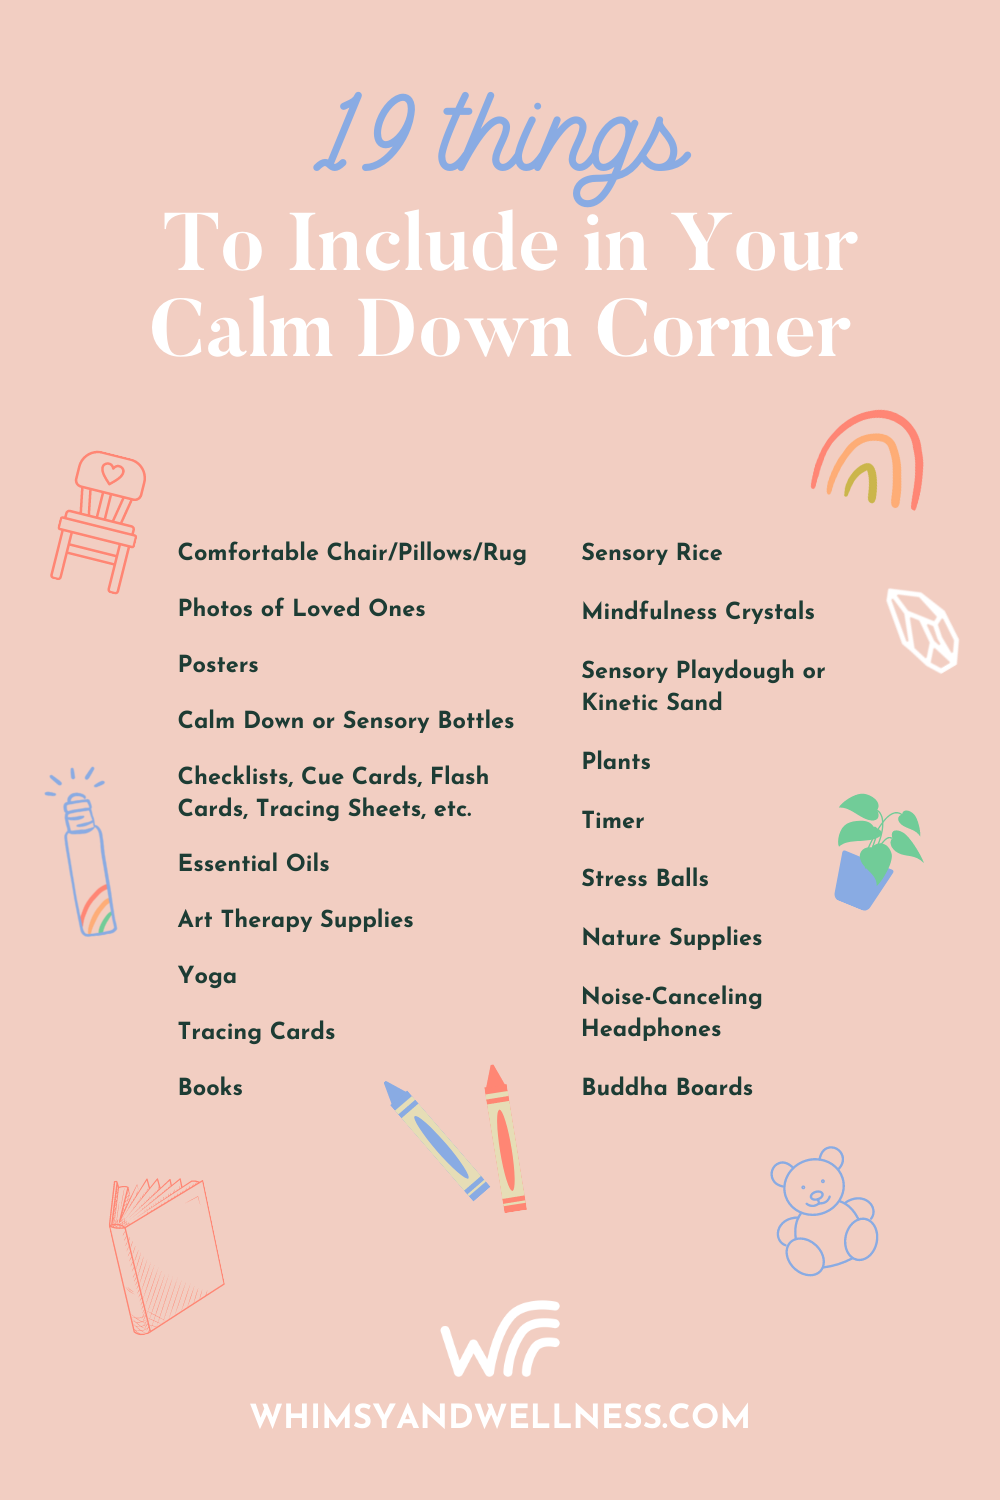 19 Things for Calm Down Corner